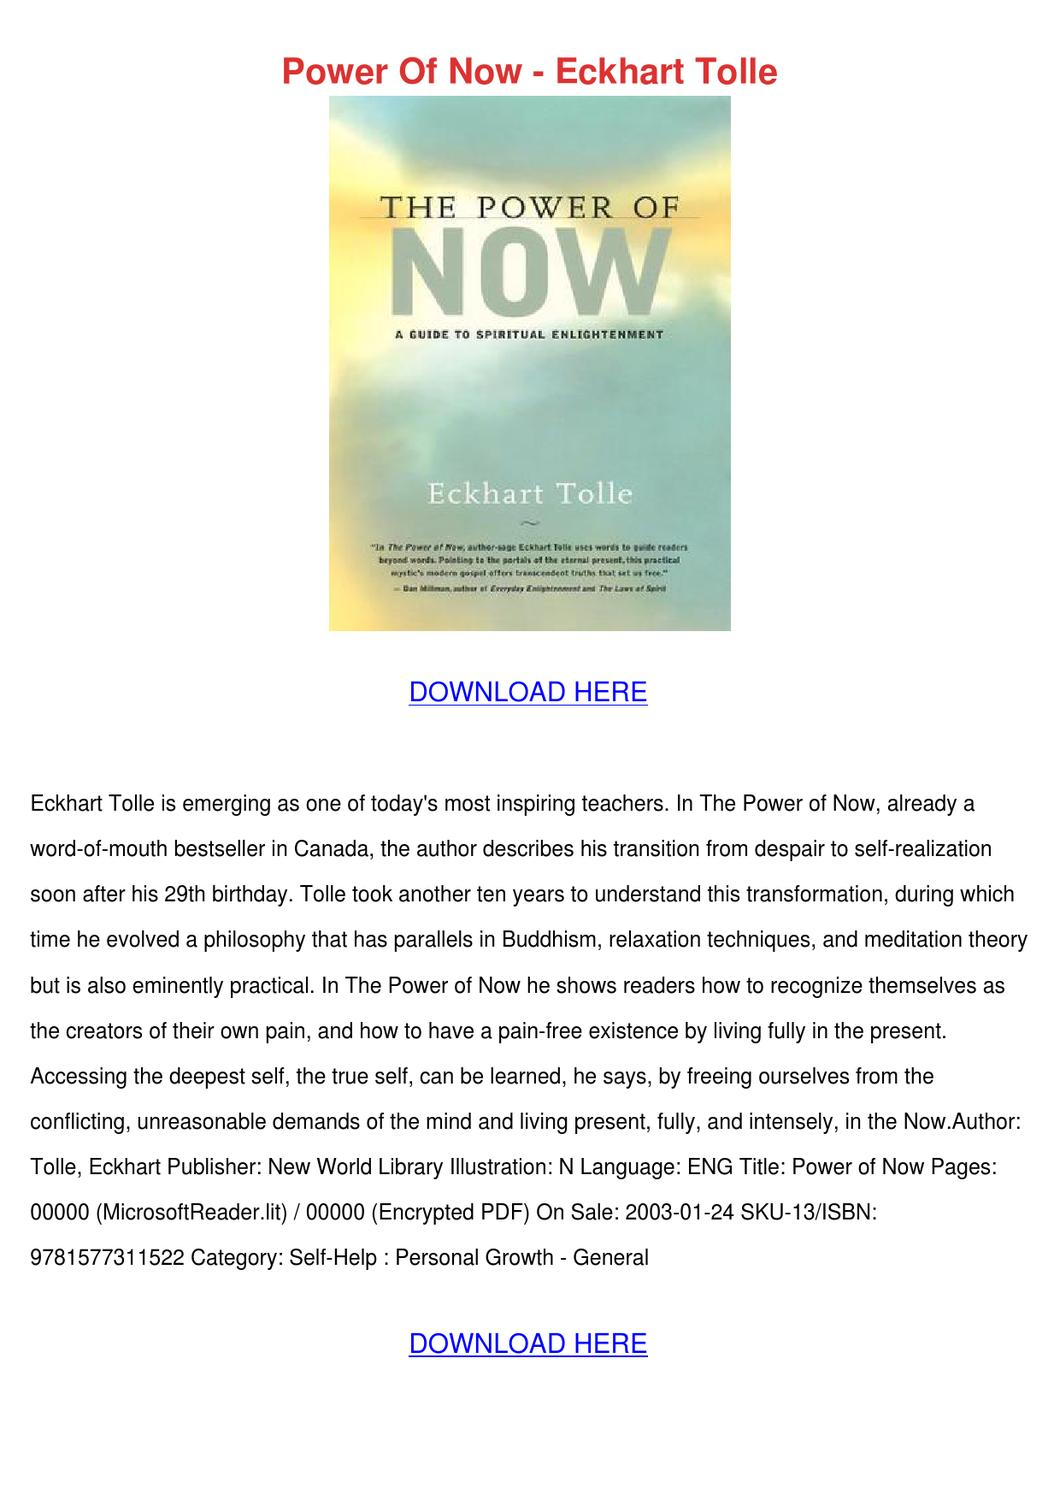 Eckhart Toll - The Power of Now